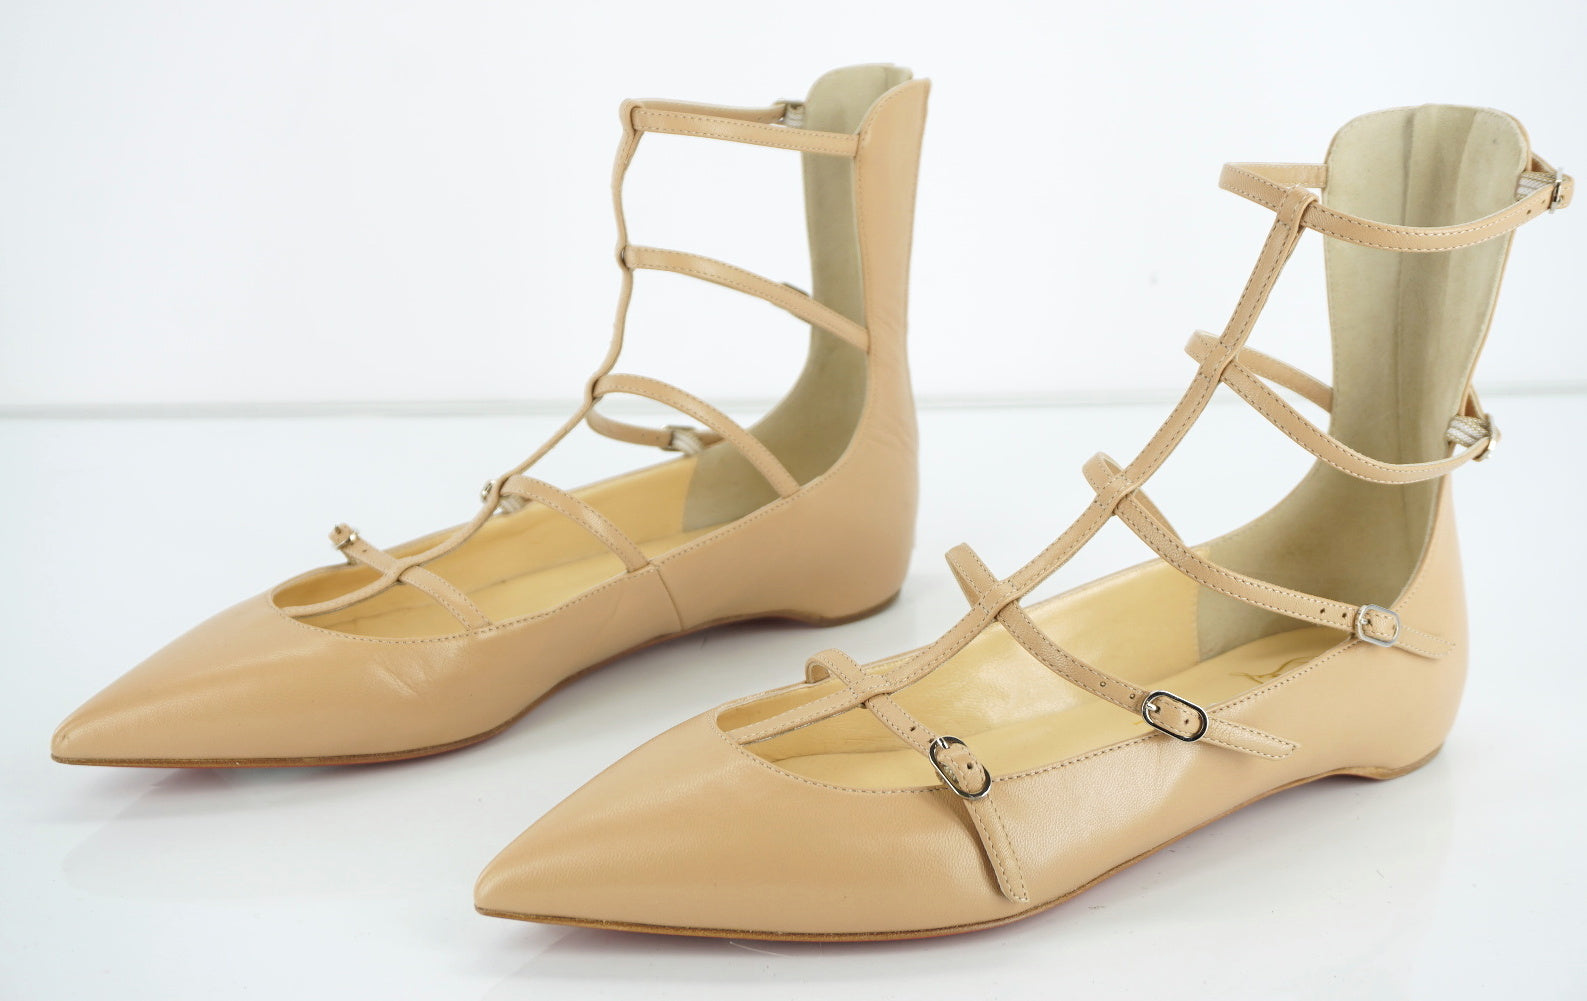 Christian Louboutin Nude Calf Toerless Strappy Flat Sandals Size 38 NIB $845